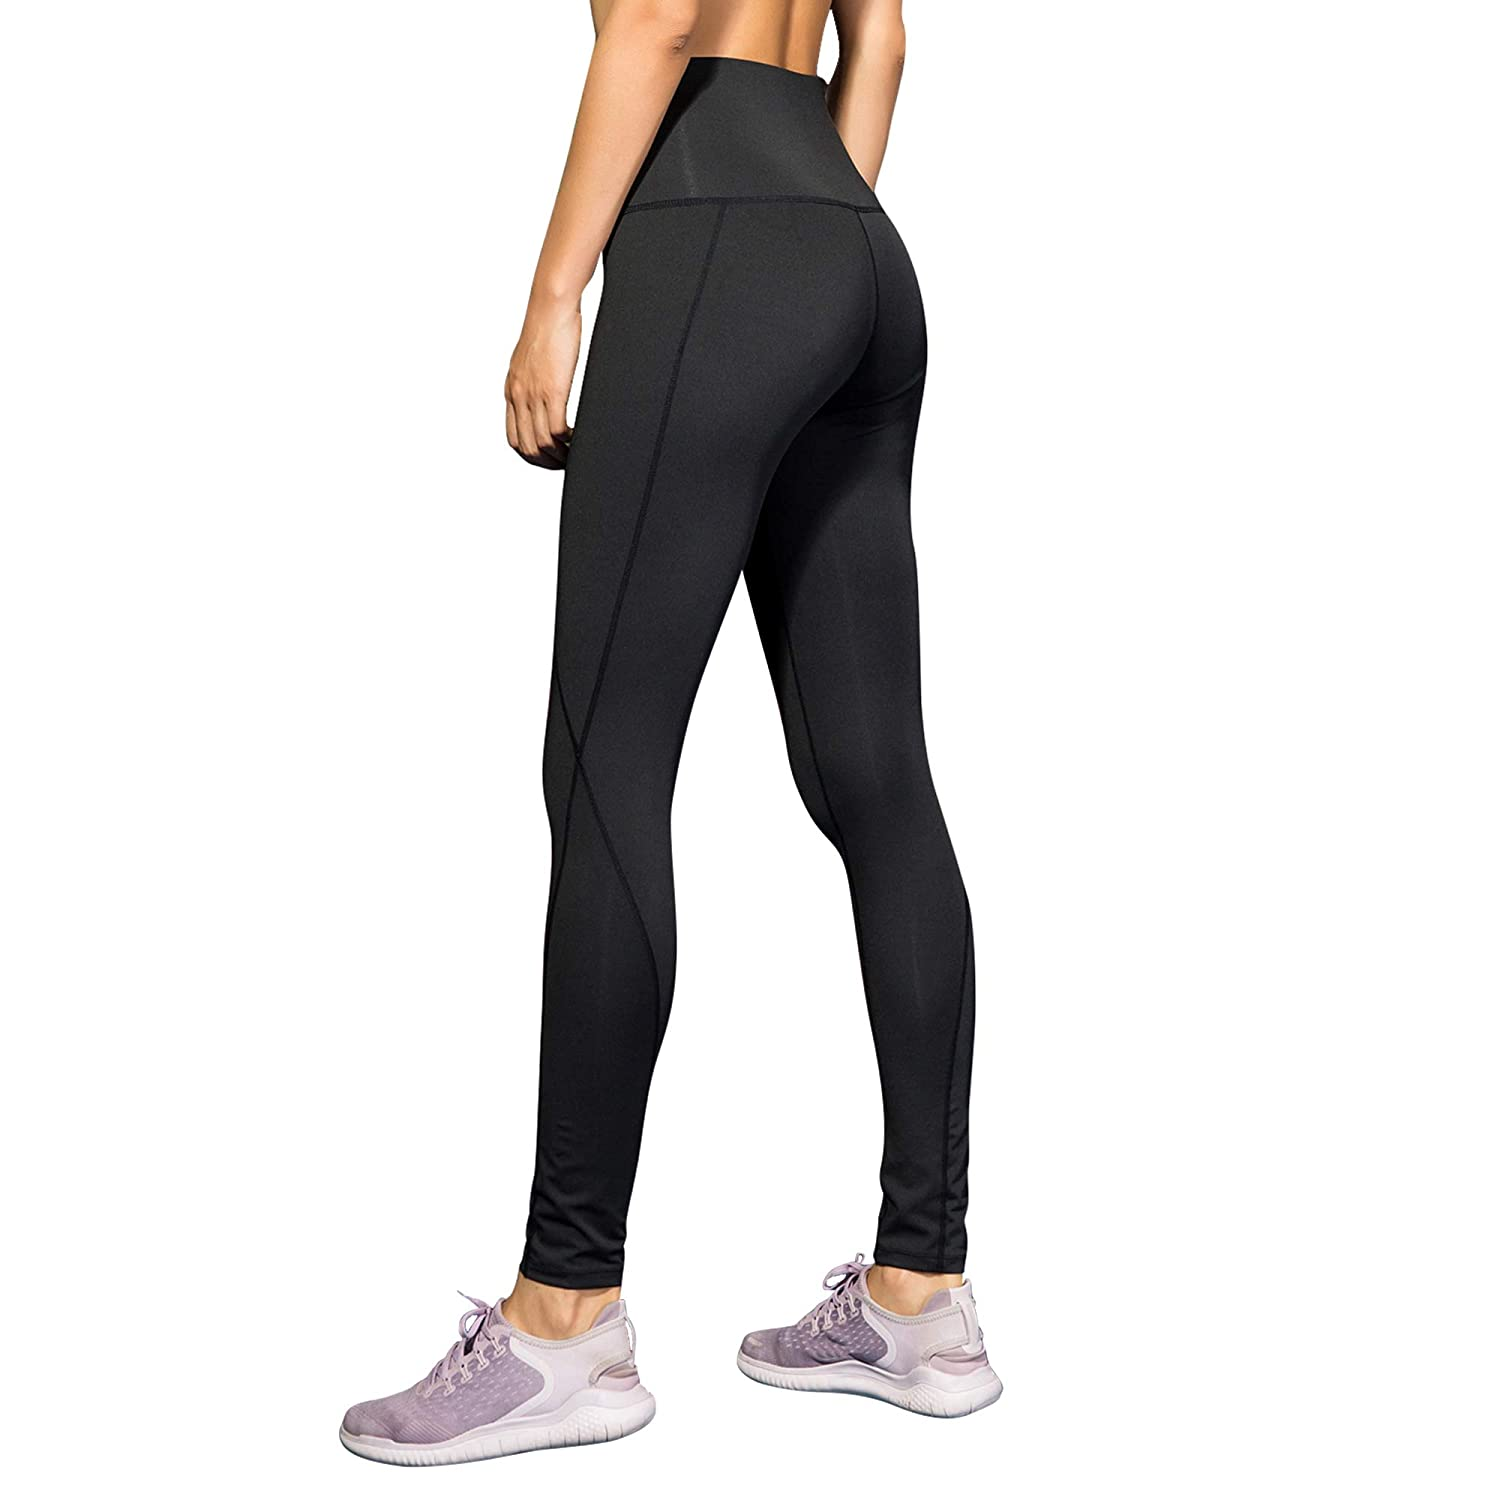 6eb2487437 Amazon.com: Womens High Waisted Athletic Leggings with Pocket Slim Fit  Running Leggings Tights Yoga Pants for Women: Clothing